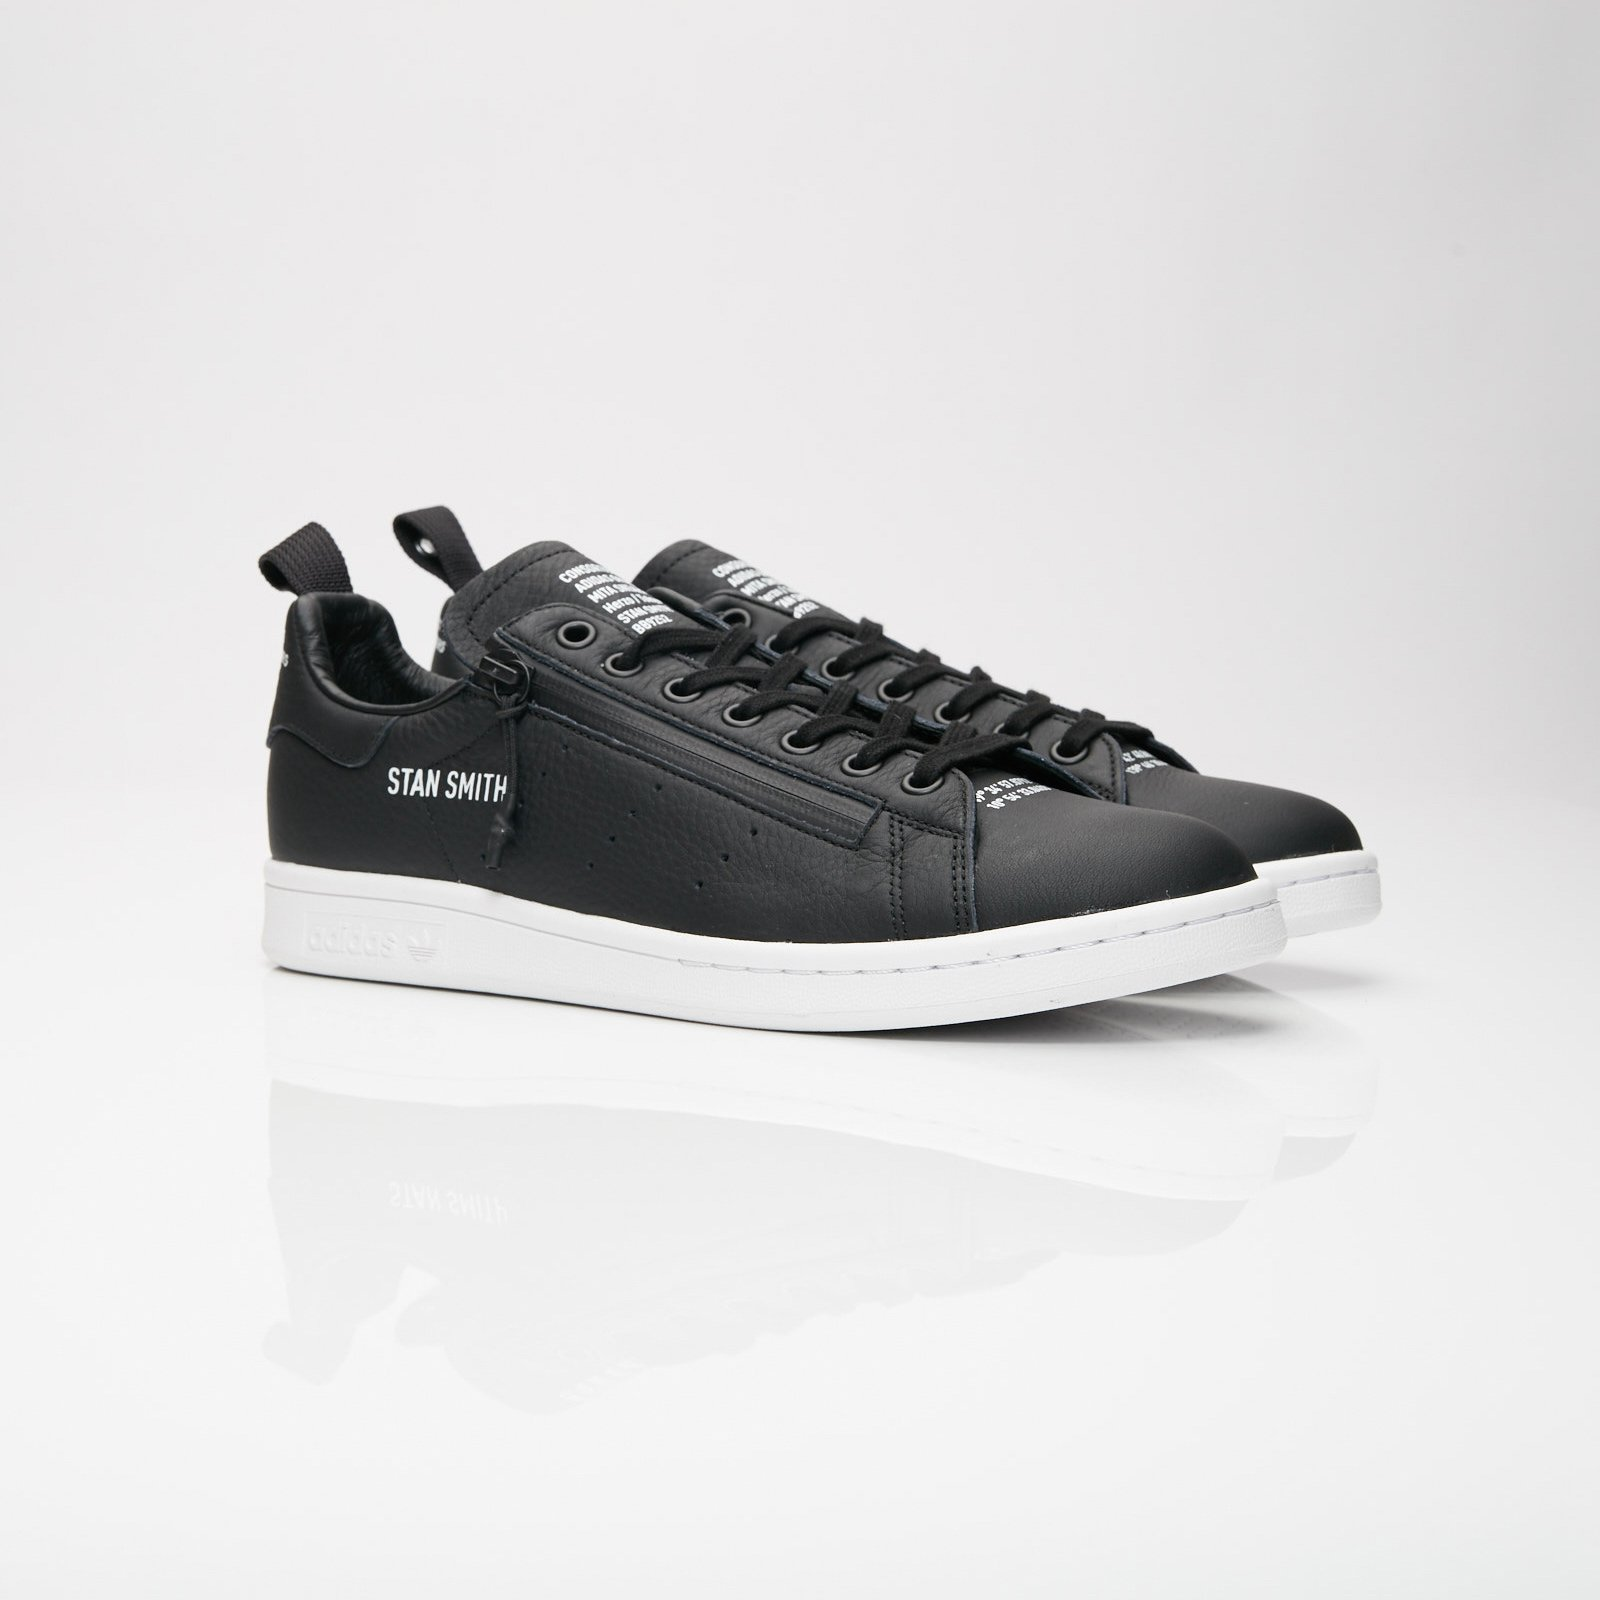 timeless design cf740 ba4c5 adidas Stan Smith MITA - Bb9252 - Sneakersnstuff | sneakers ...